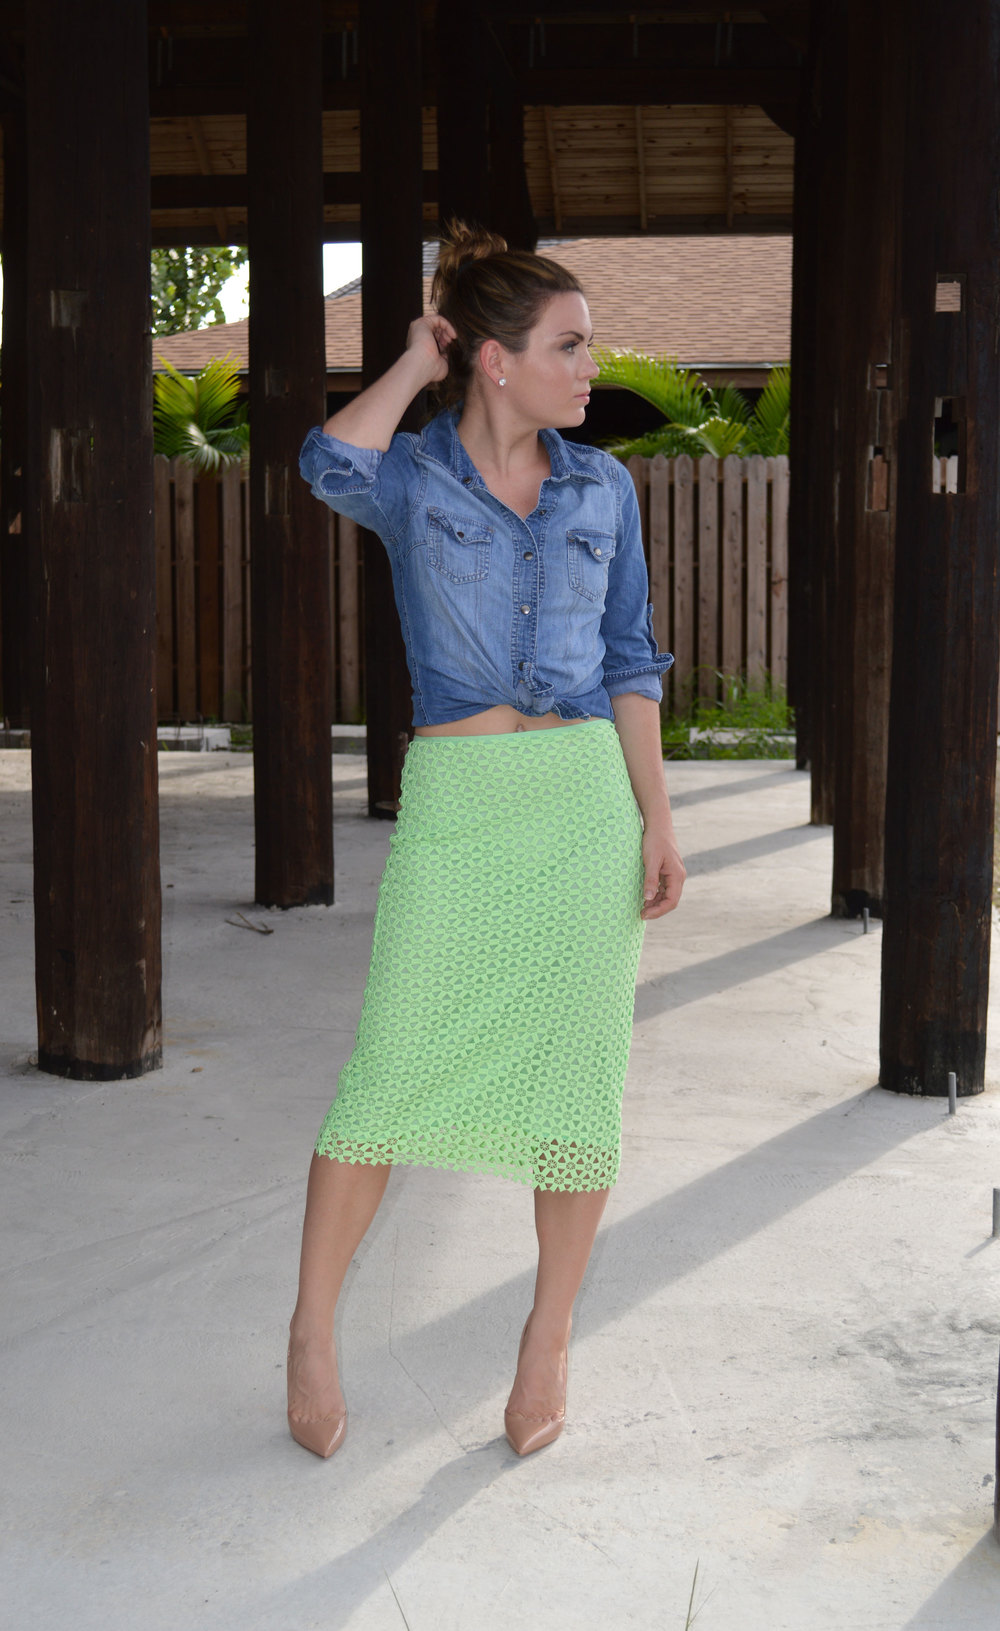 Denim-Button-forever21-Down-Zara-green-lace-Pencil-Skirt-FromCtoC-nassau-bahamas-christian-louboutin-so-kate-nude-lifestyle-style-fashion-blogger.jpeg